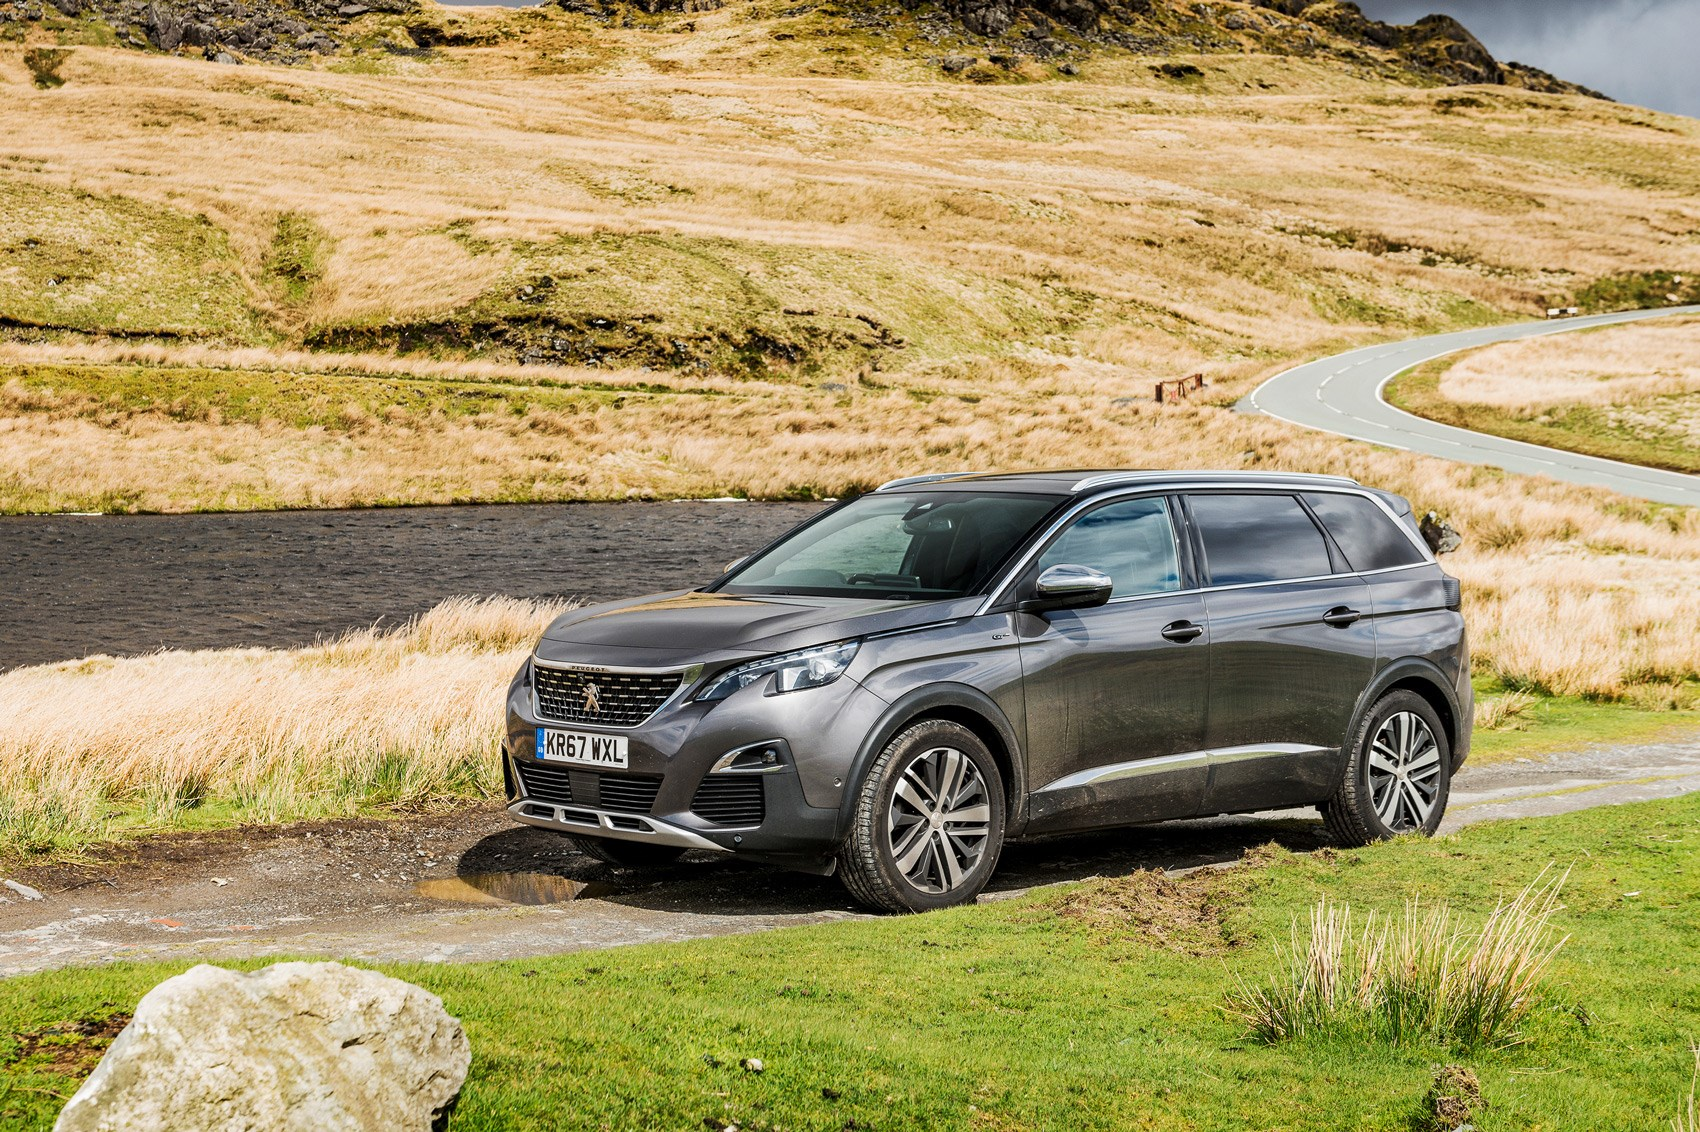 Maserati Suv For Sale >> Peugeot 5008 (2018) long-term test review | CAR Magazine